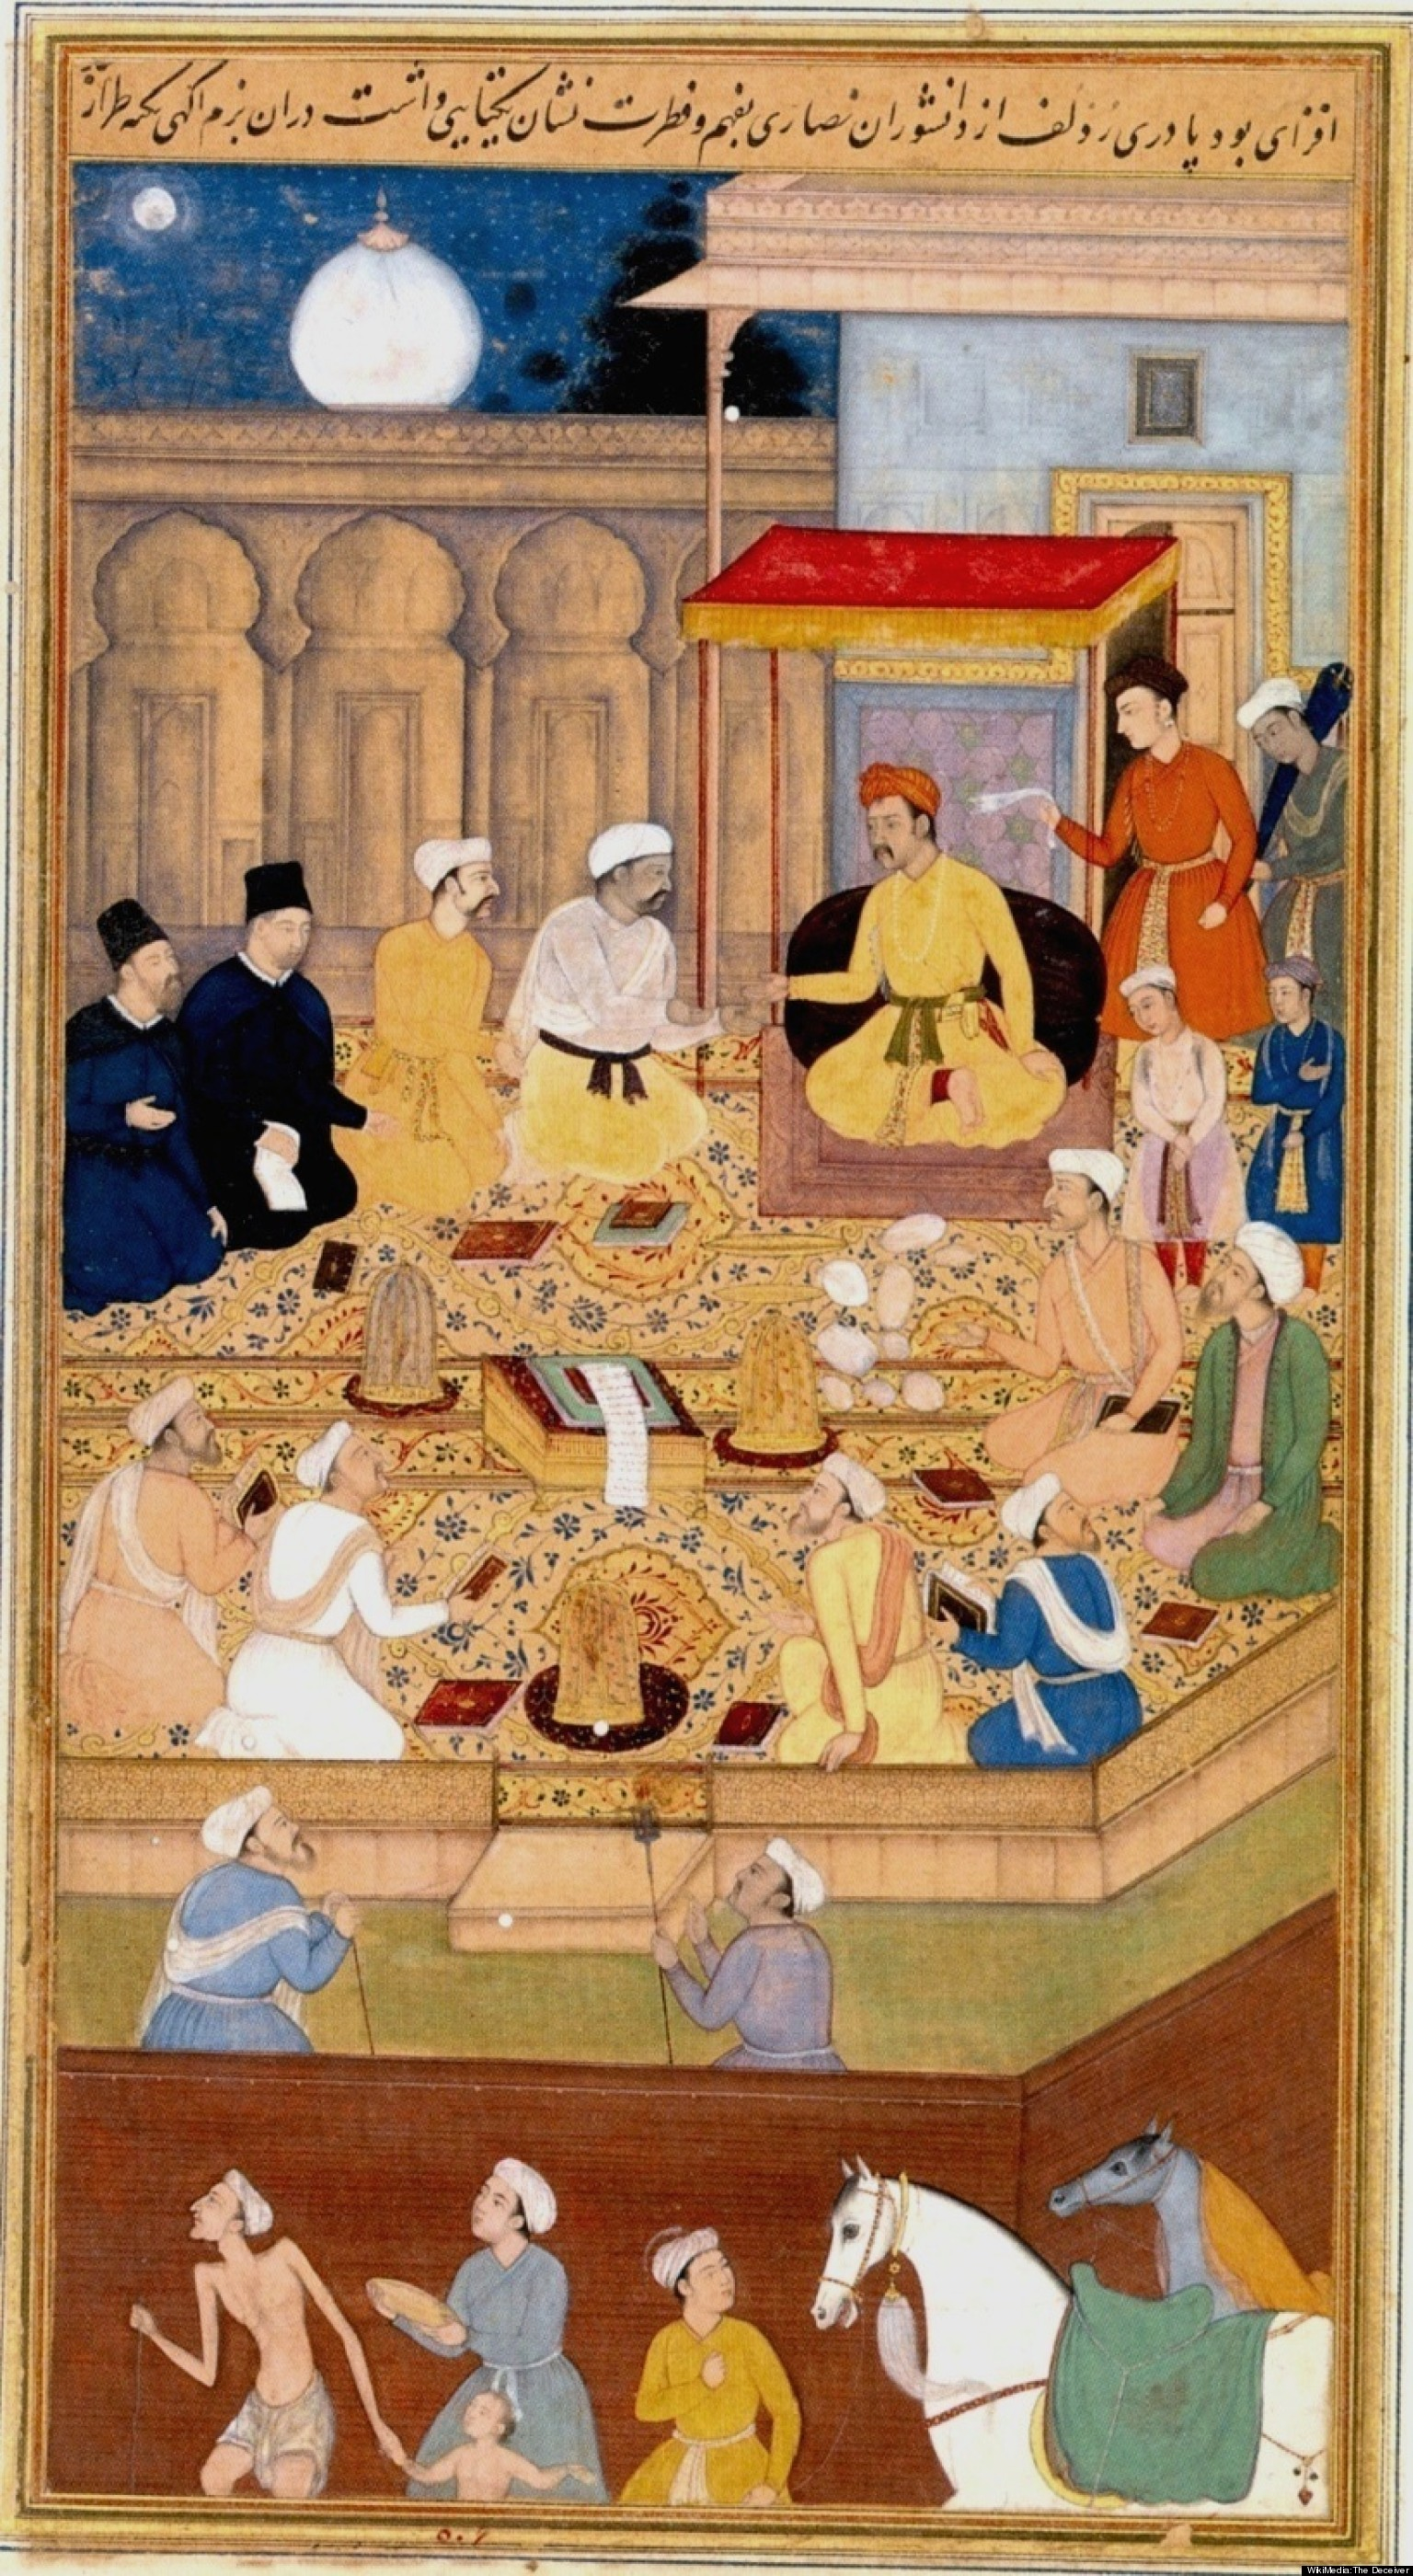 finding tolerance in akbar the philosopher king huffpost